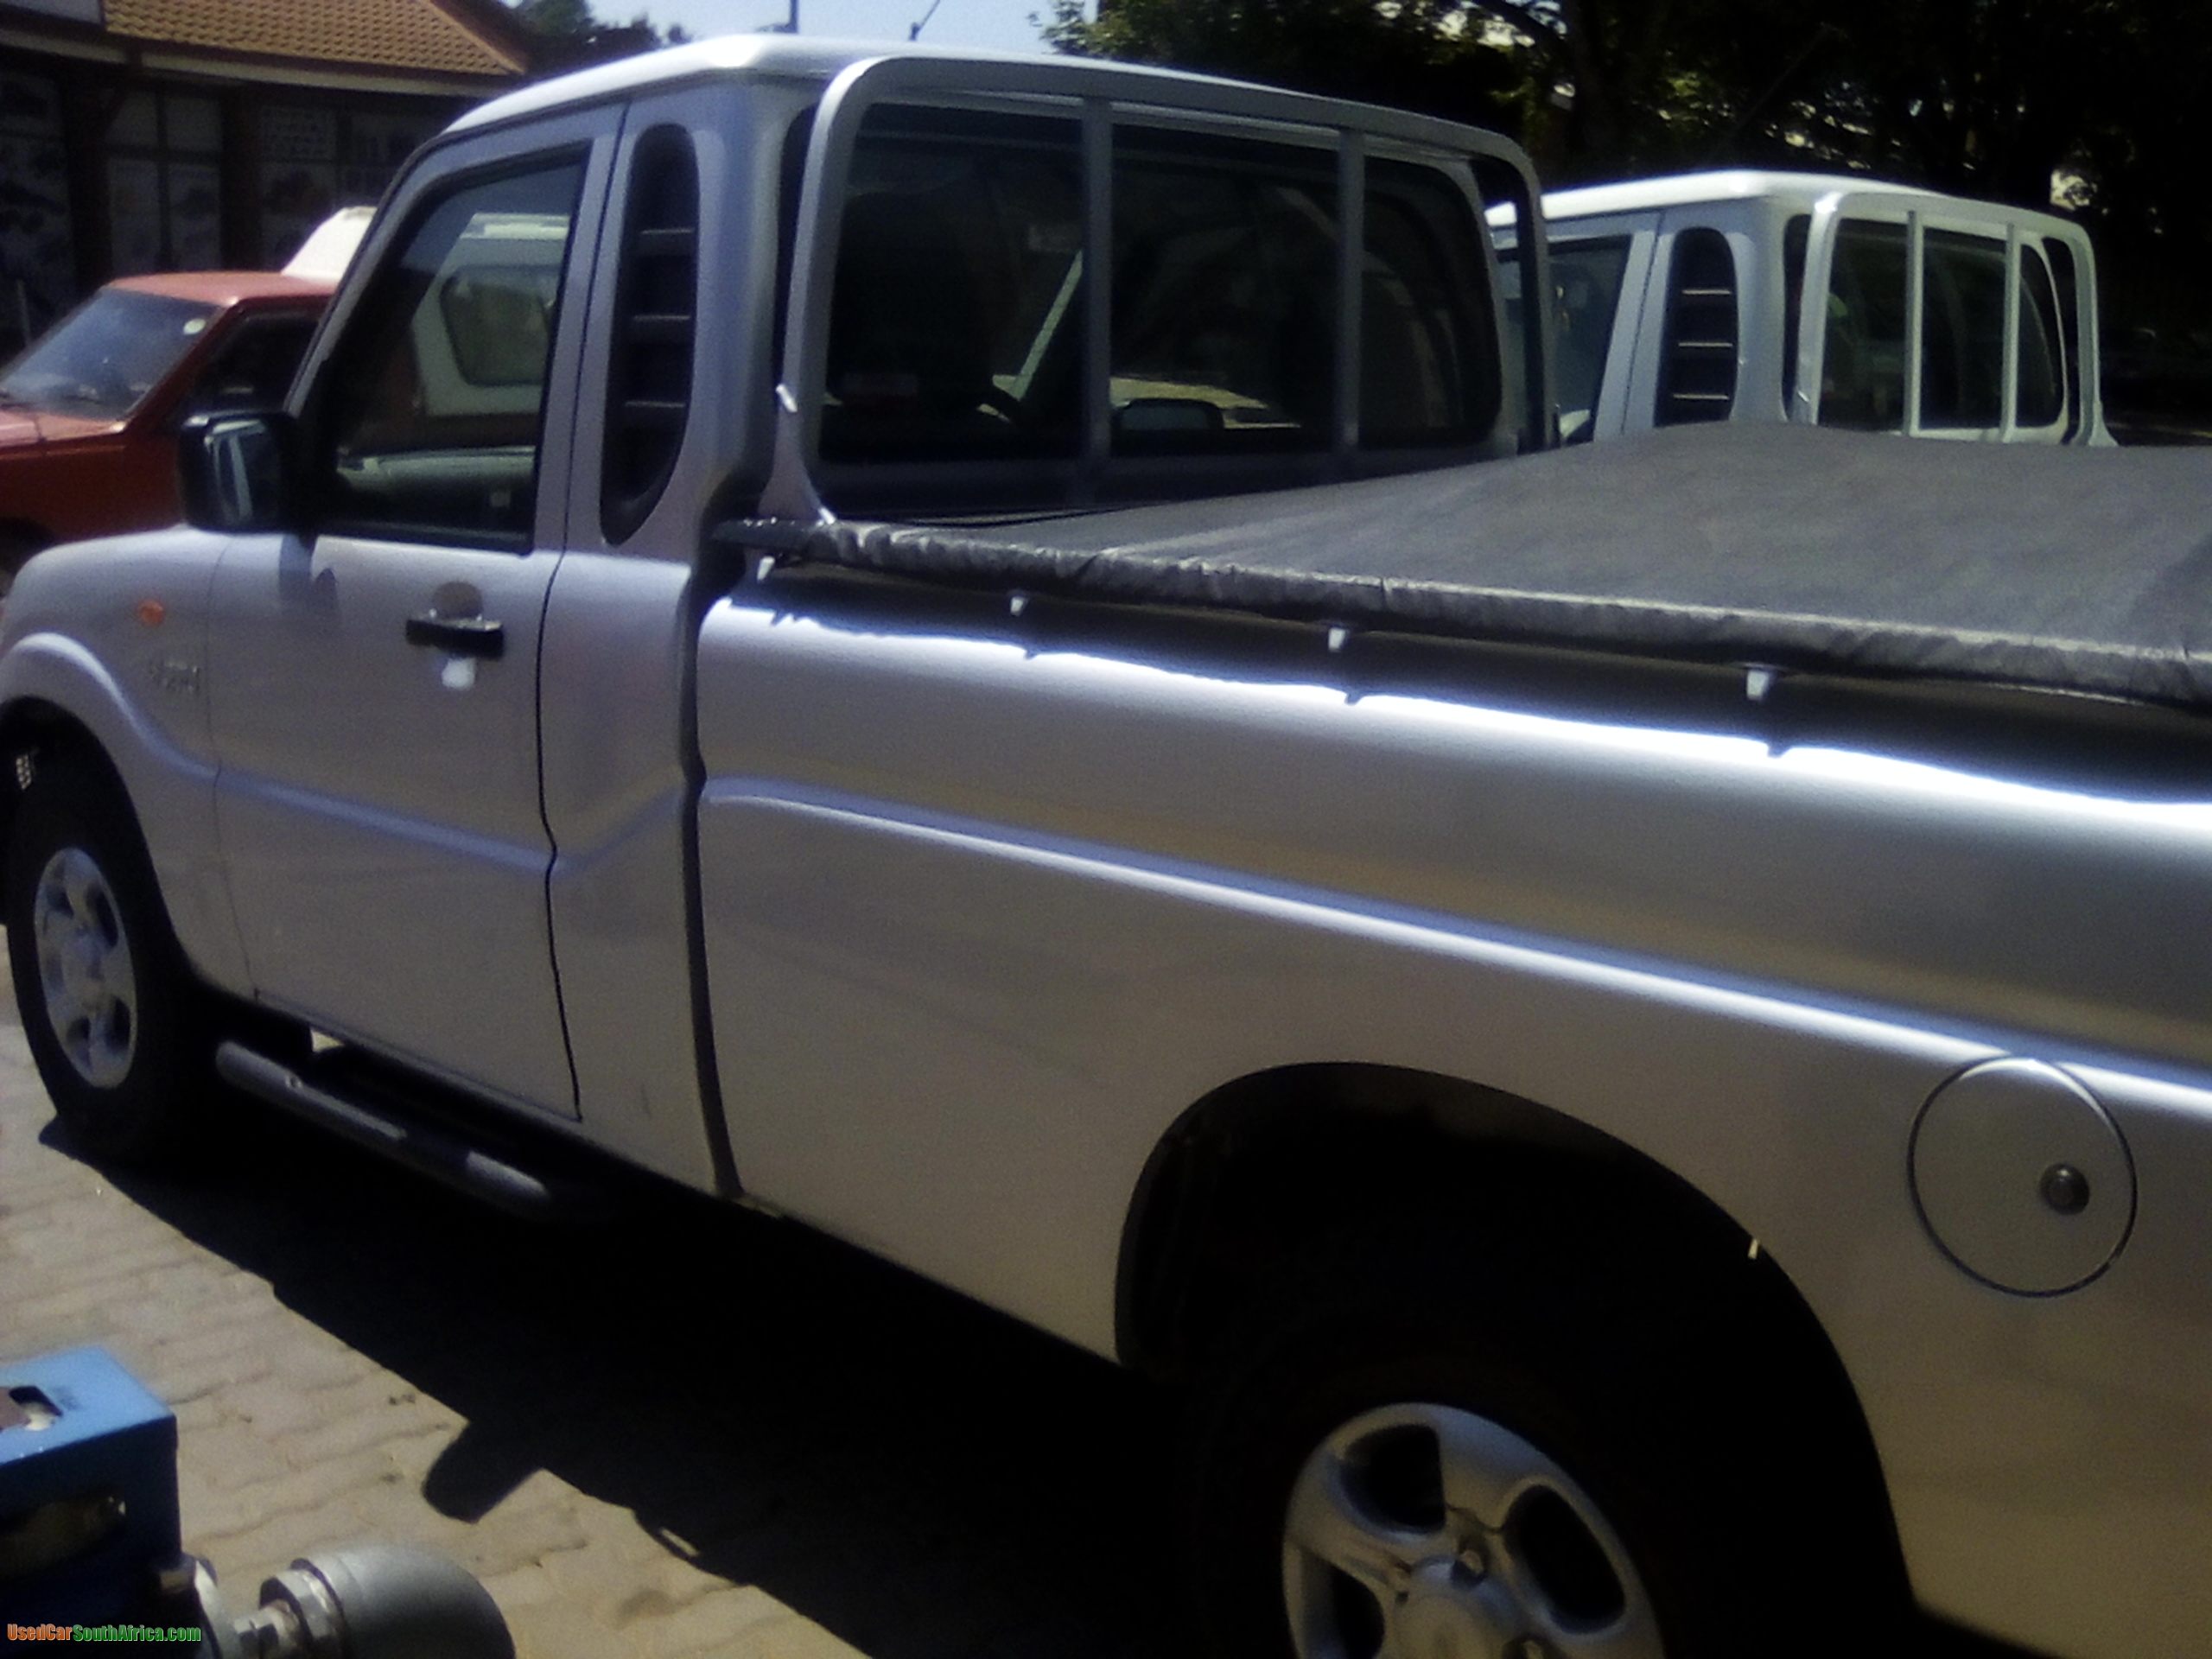 2017 mahindra scorpio pik up used car for sale in bronkhorstspruit gauteng south africa usedcarsouthafrica 0